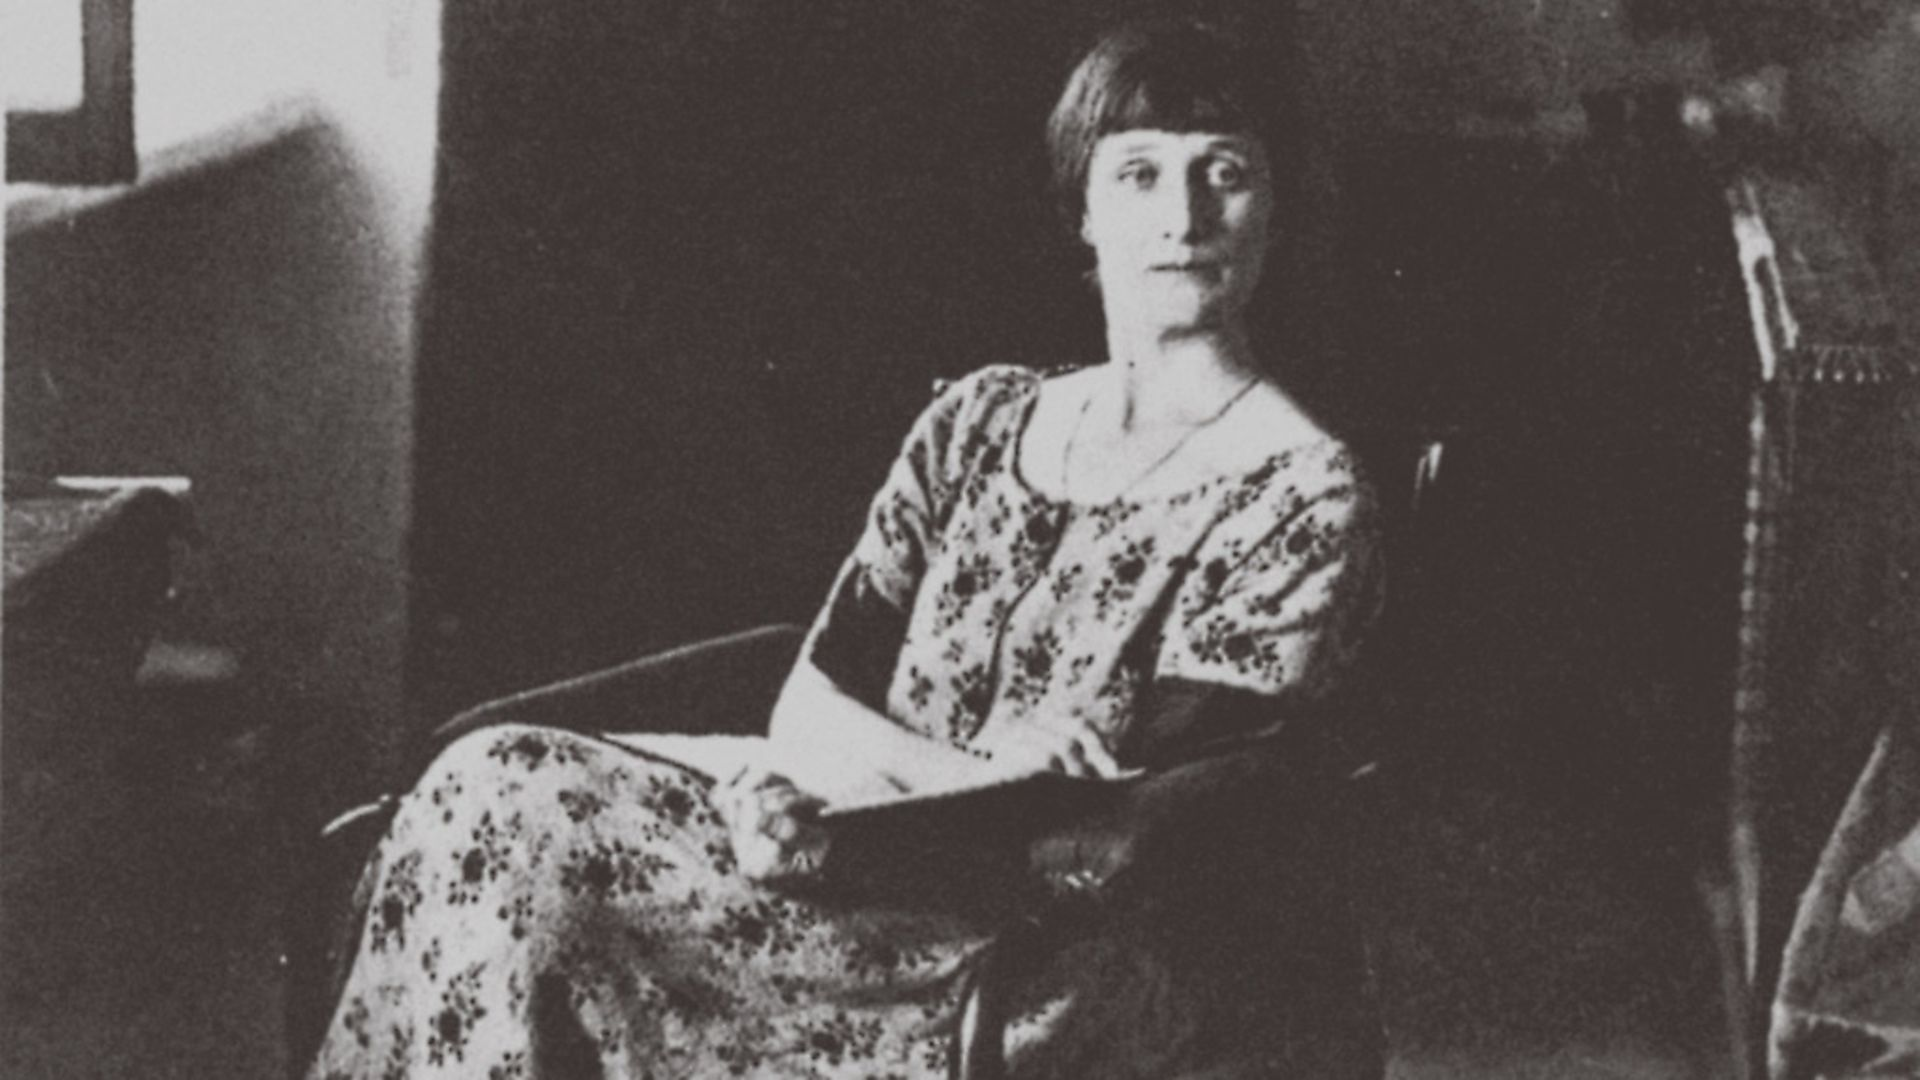 Poetess Anna Akhmatova (1889-1966). Photo by Fine Art Images/Heritage Images/Getty Images - Credit: Heritage Images/Getty Images